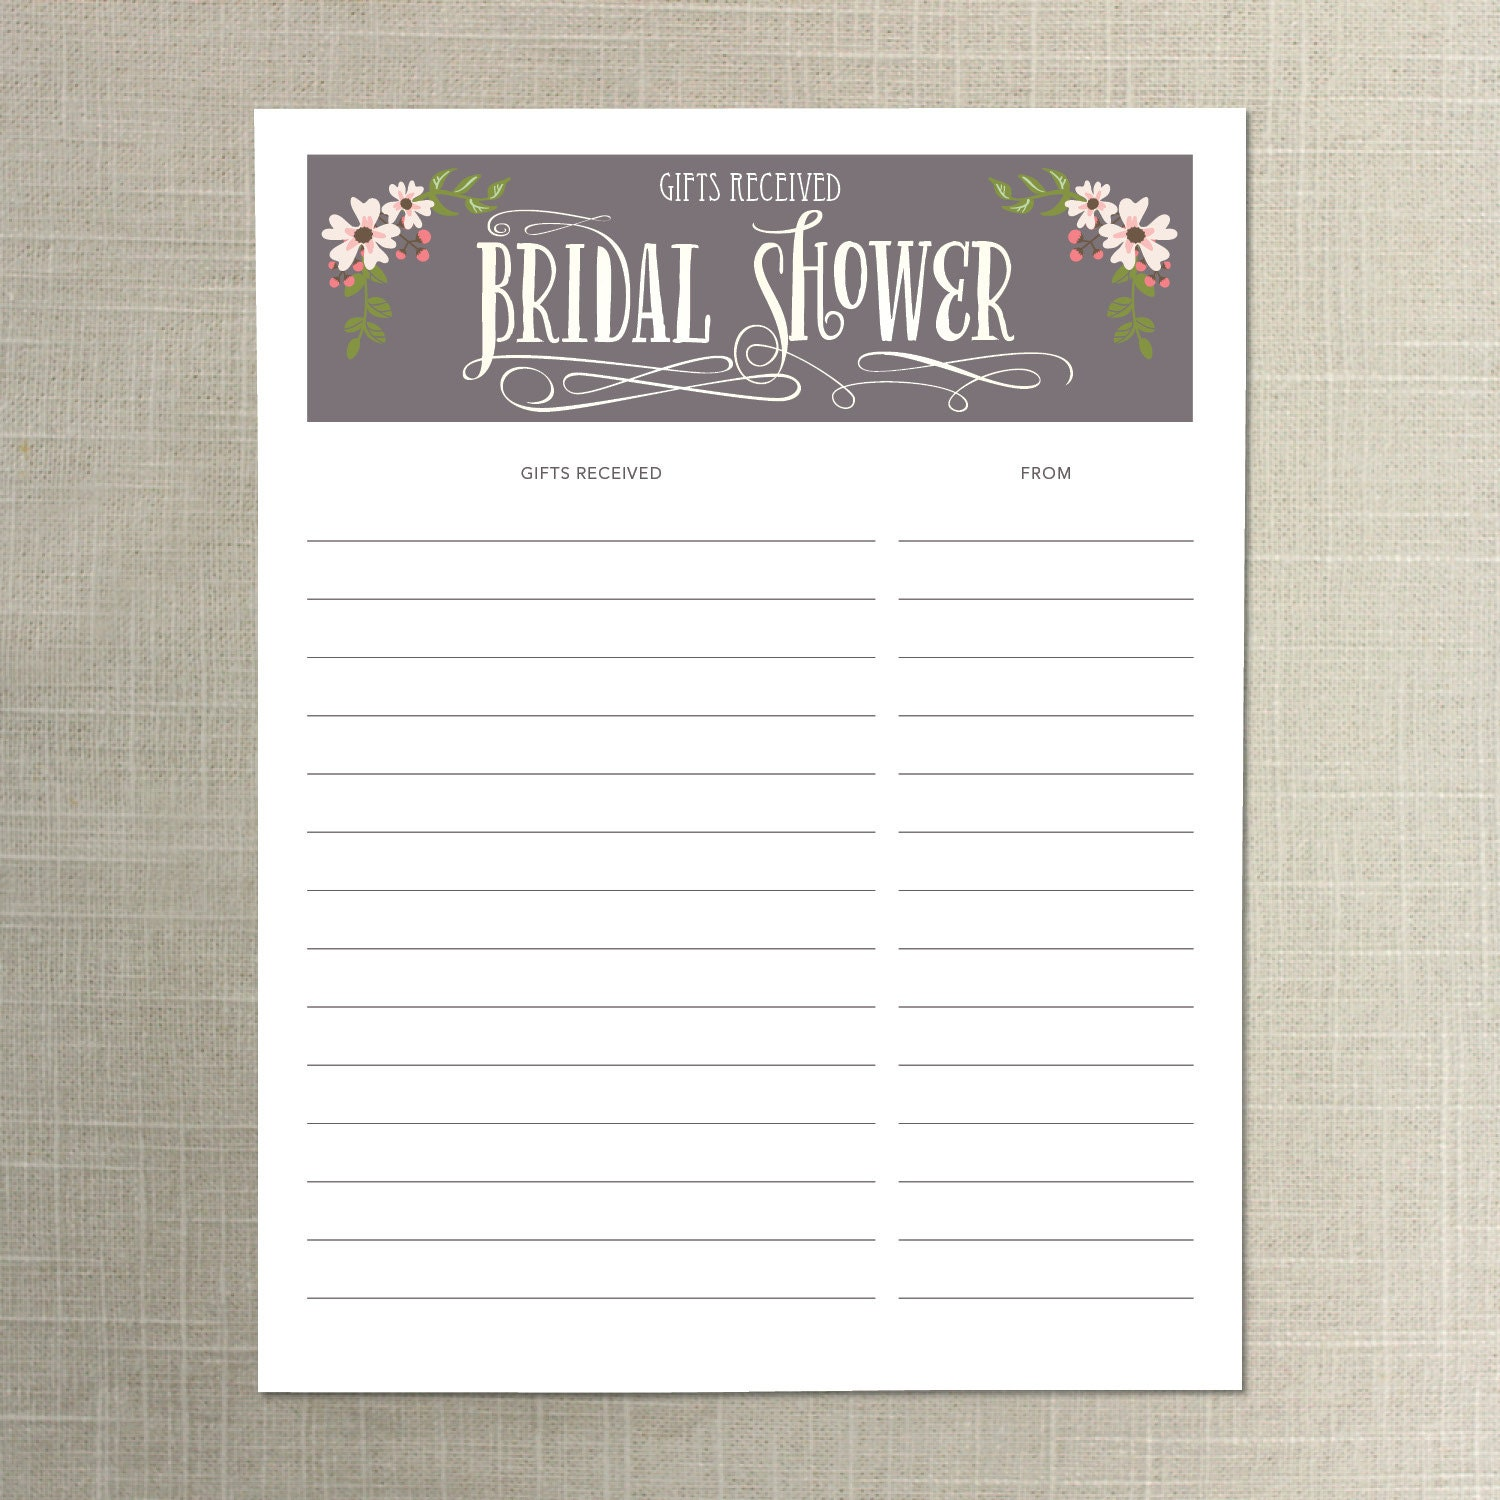 wedding shower gift list template - instant download bridal shower gift list gifts received